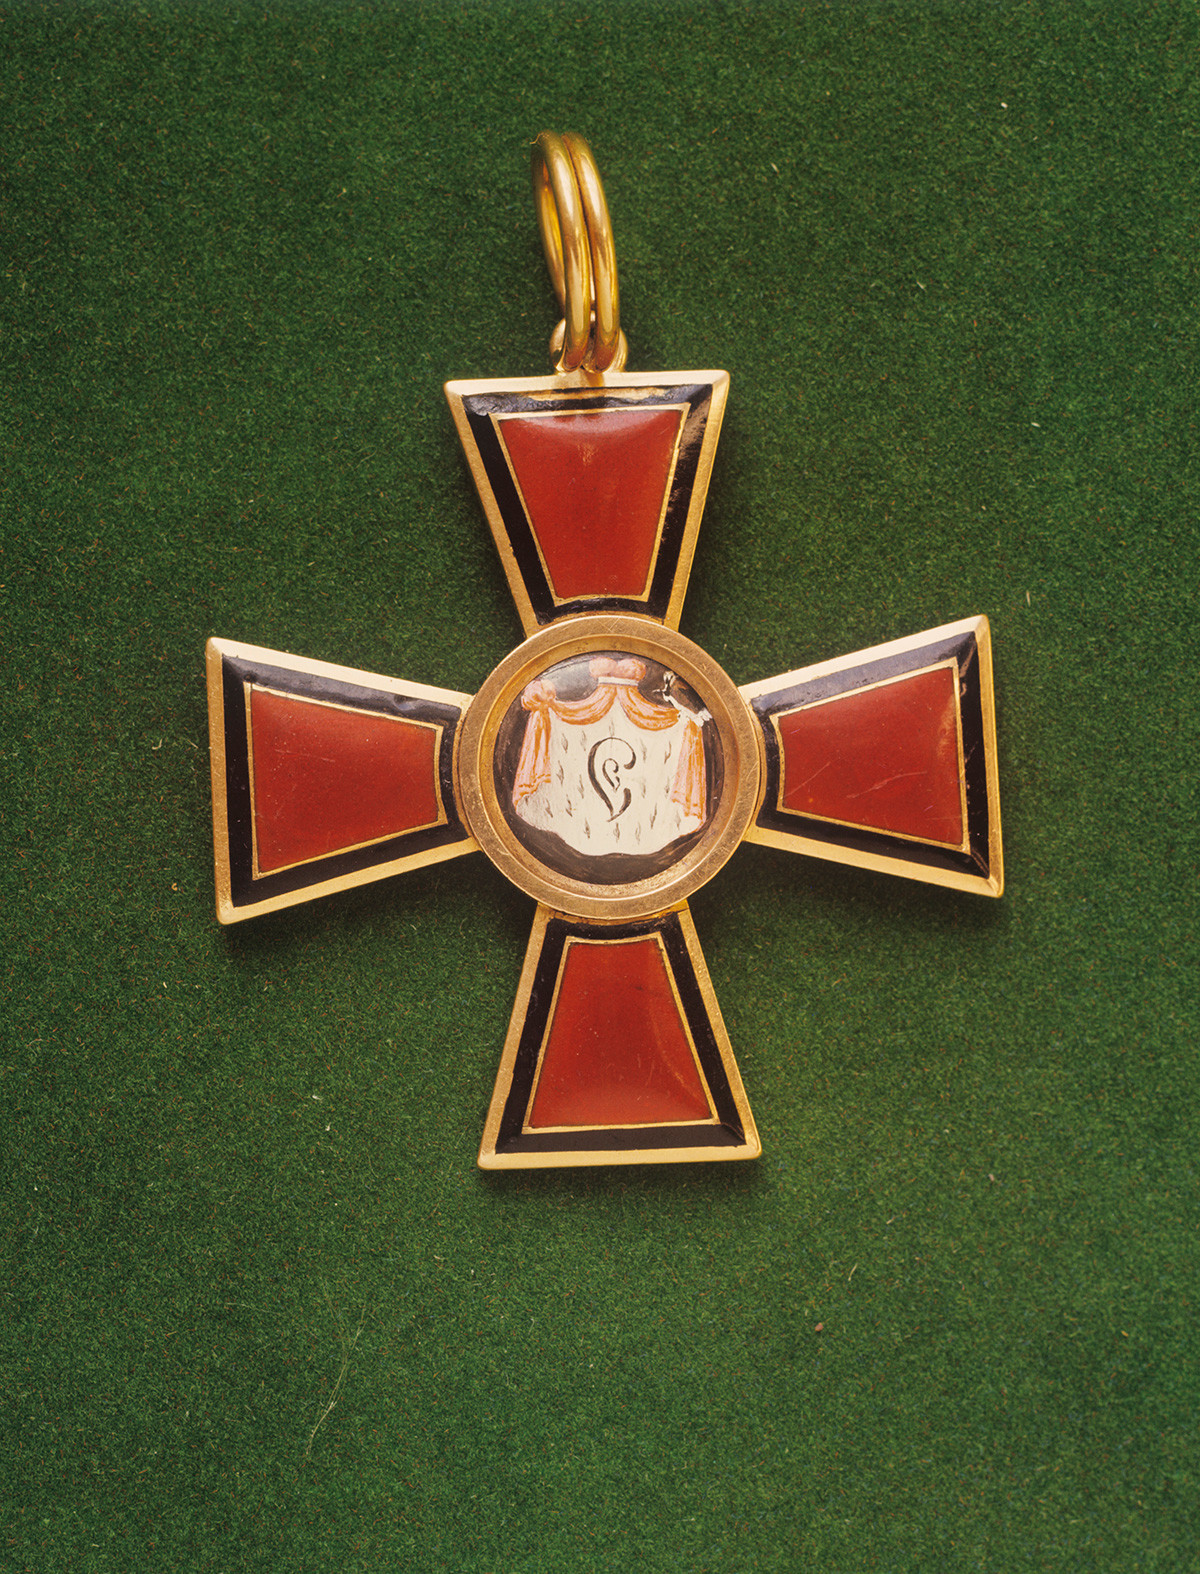 The Cross (Badge) of the Order of Saint Vladimir, 1st class.